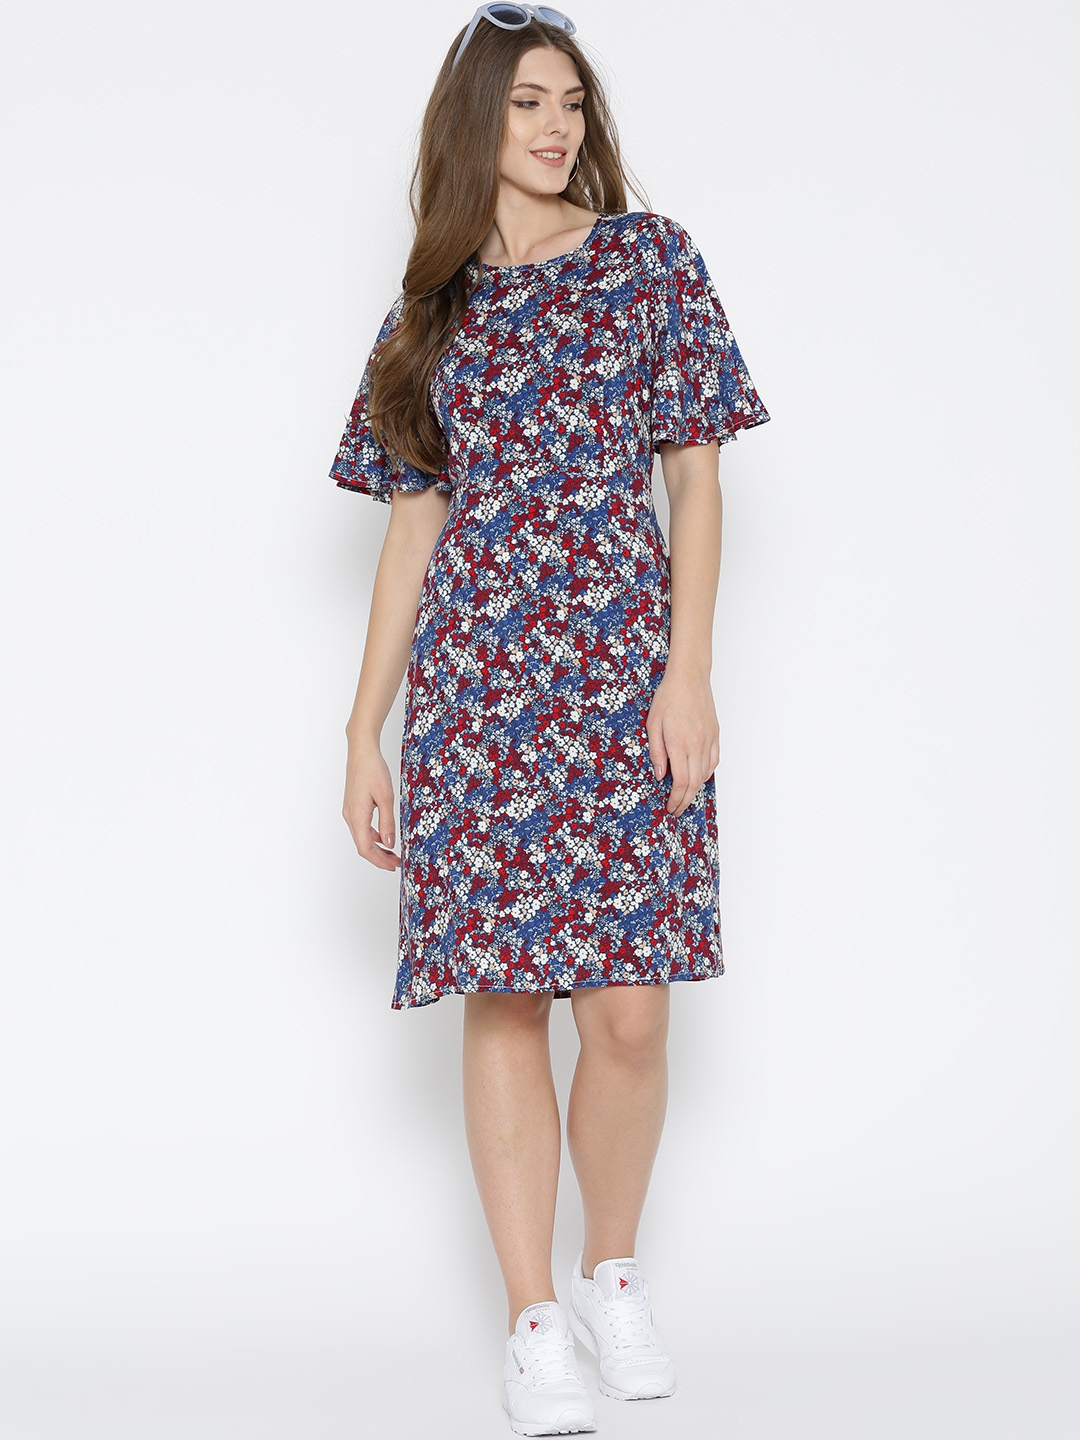 Cotton Dress - Buy Cotton Dresses For Women Online in India